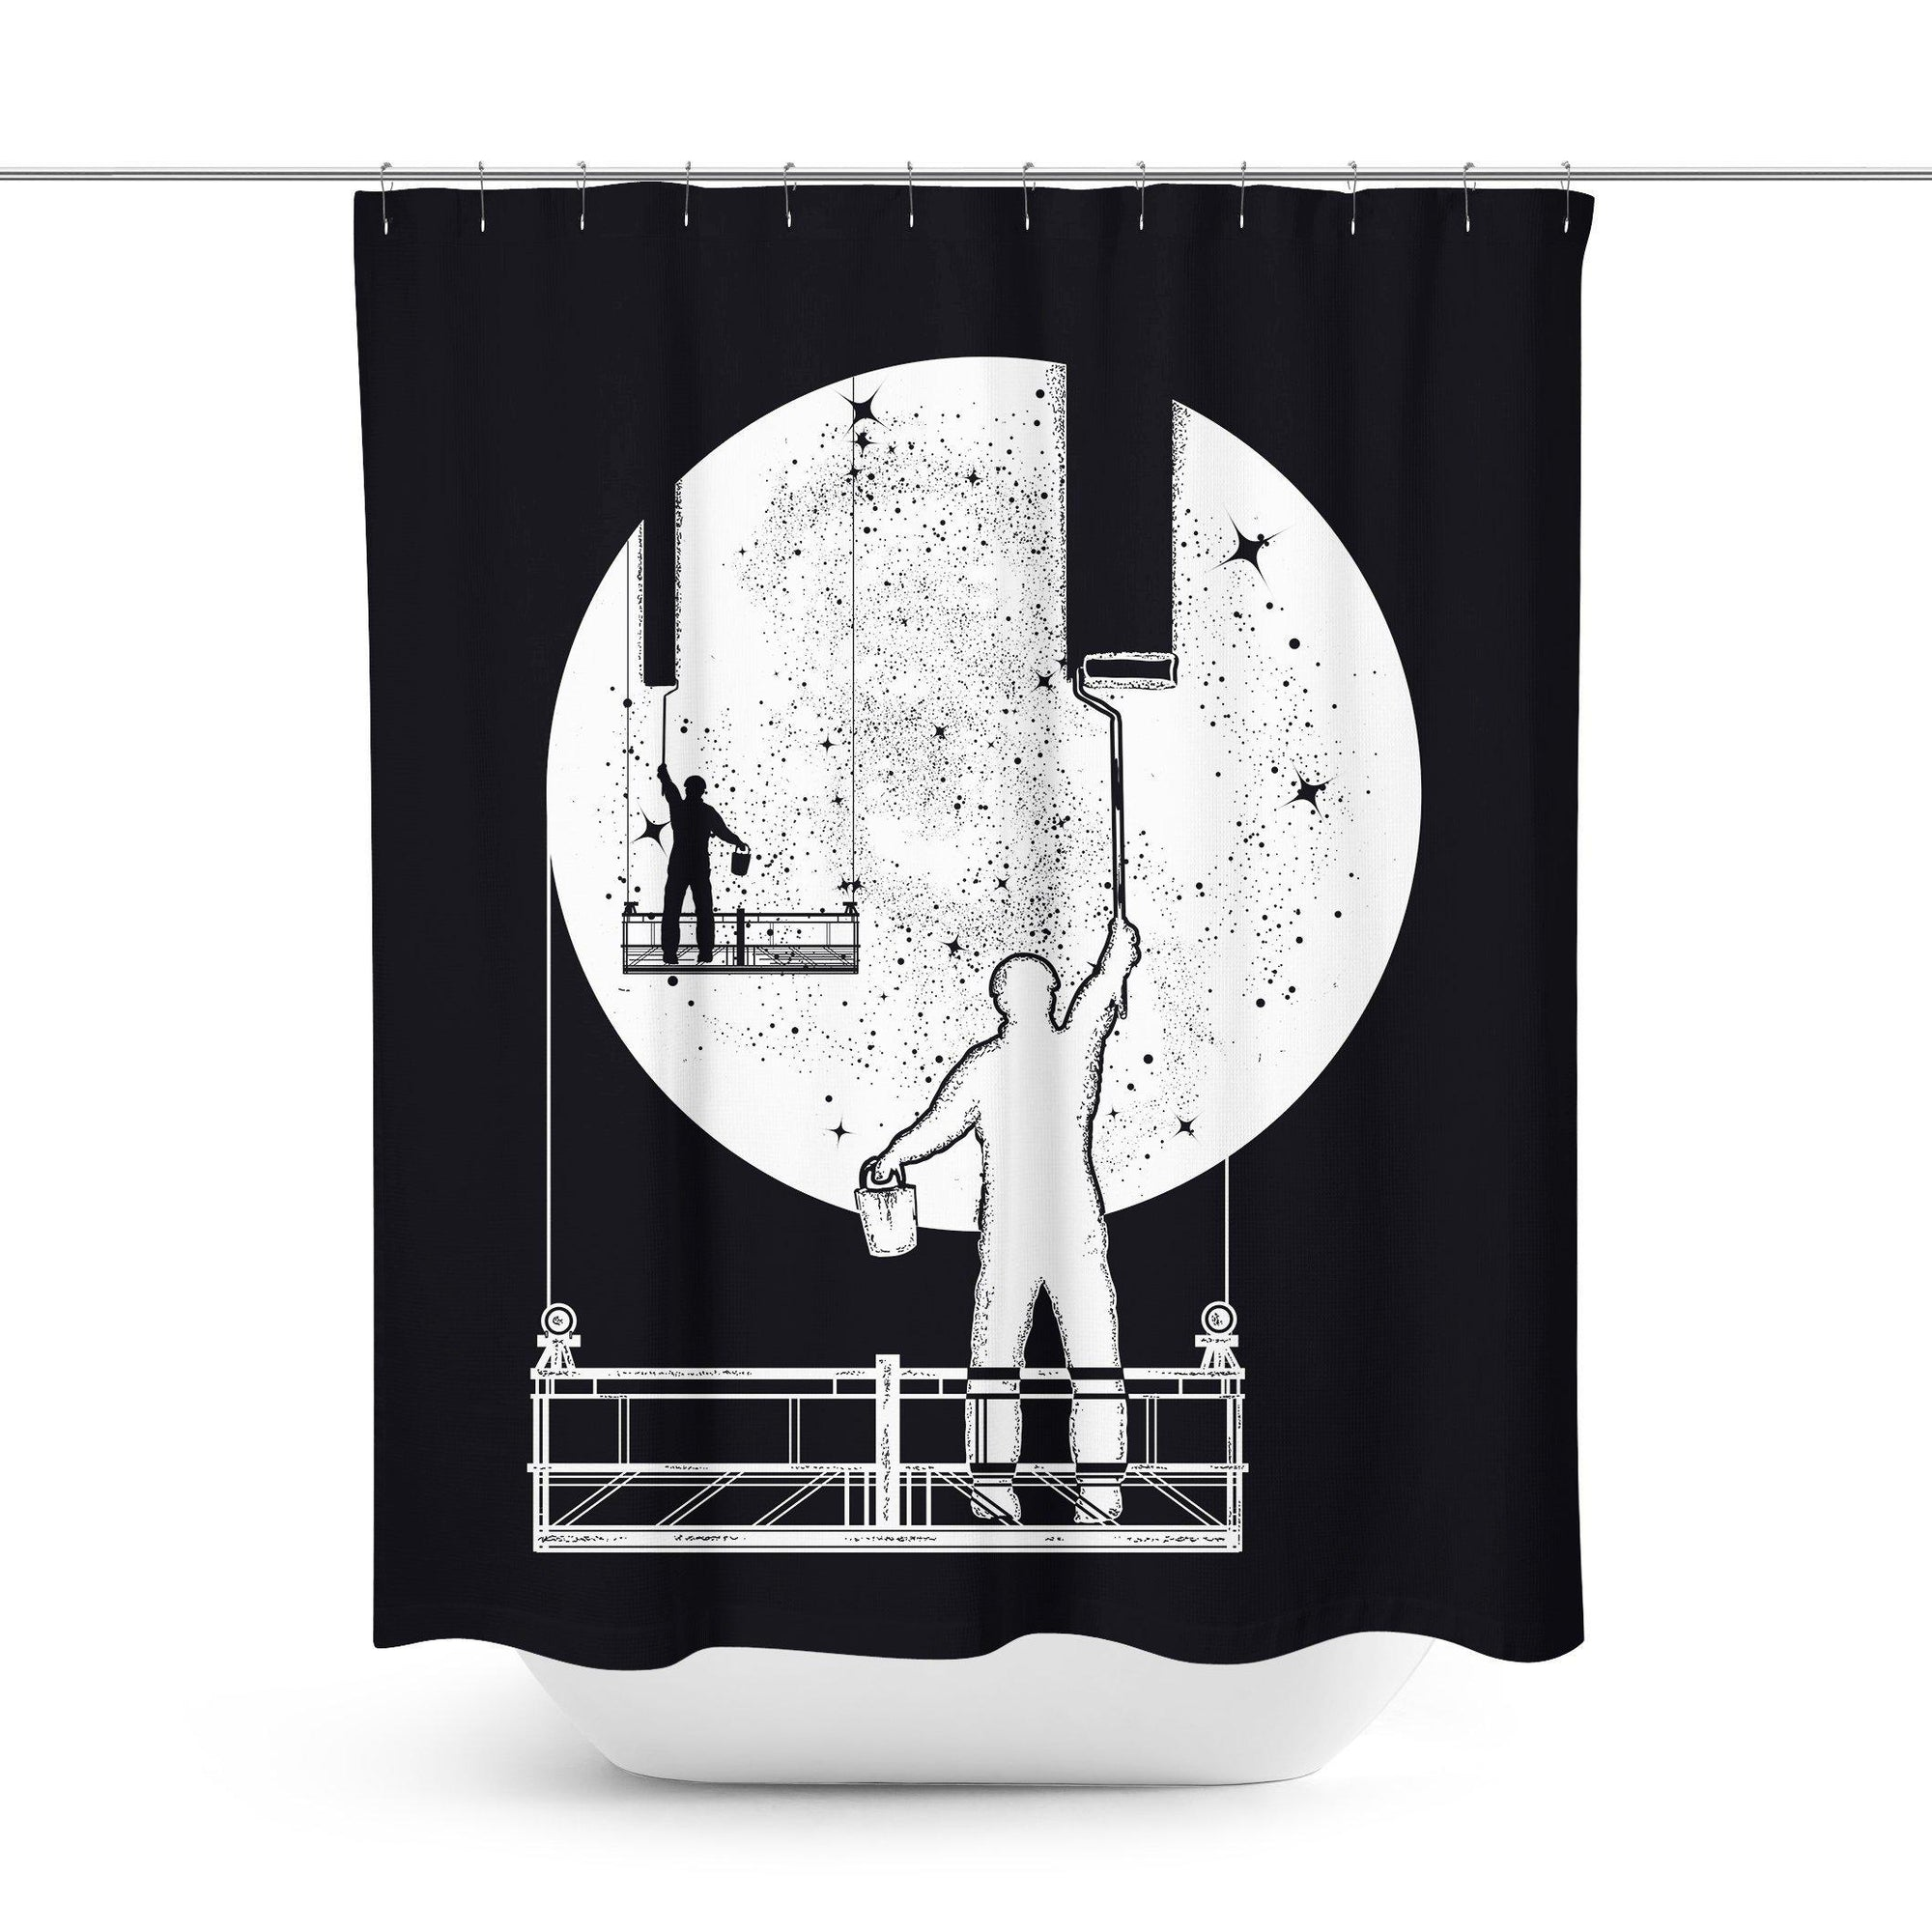 Cool Shower Curtain - Shower Curtains - W.FRANCIS